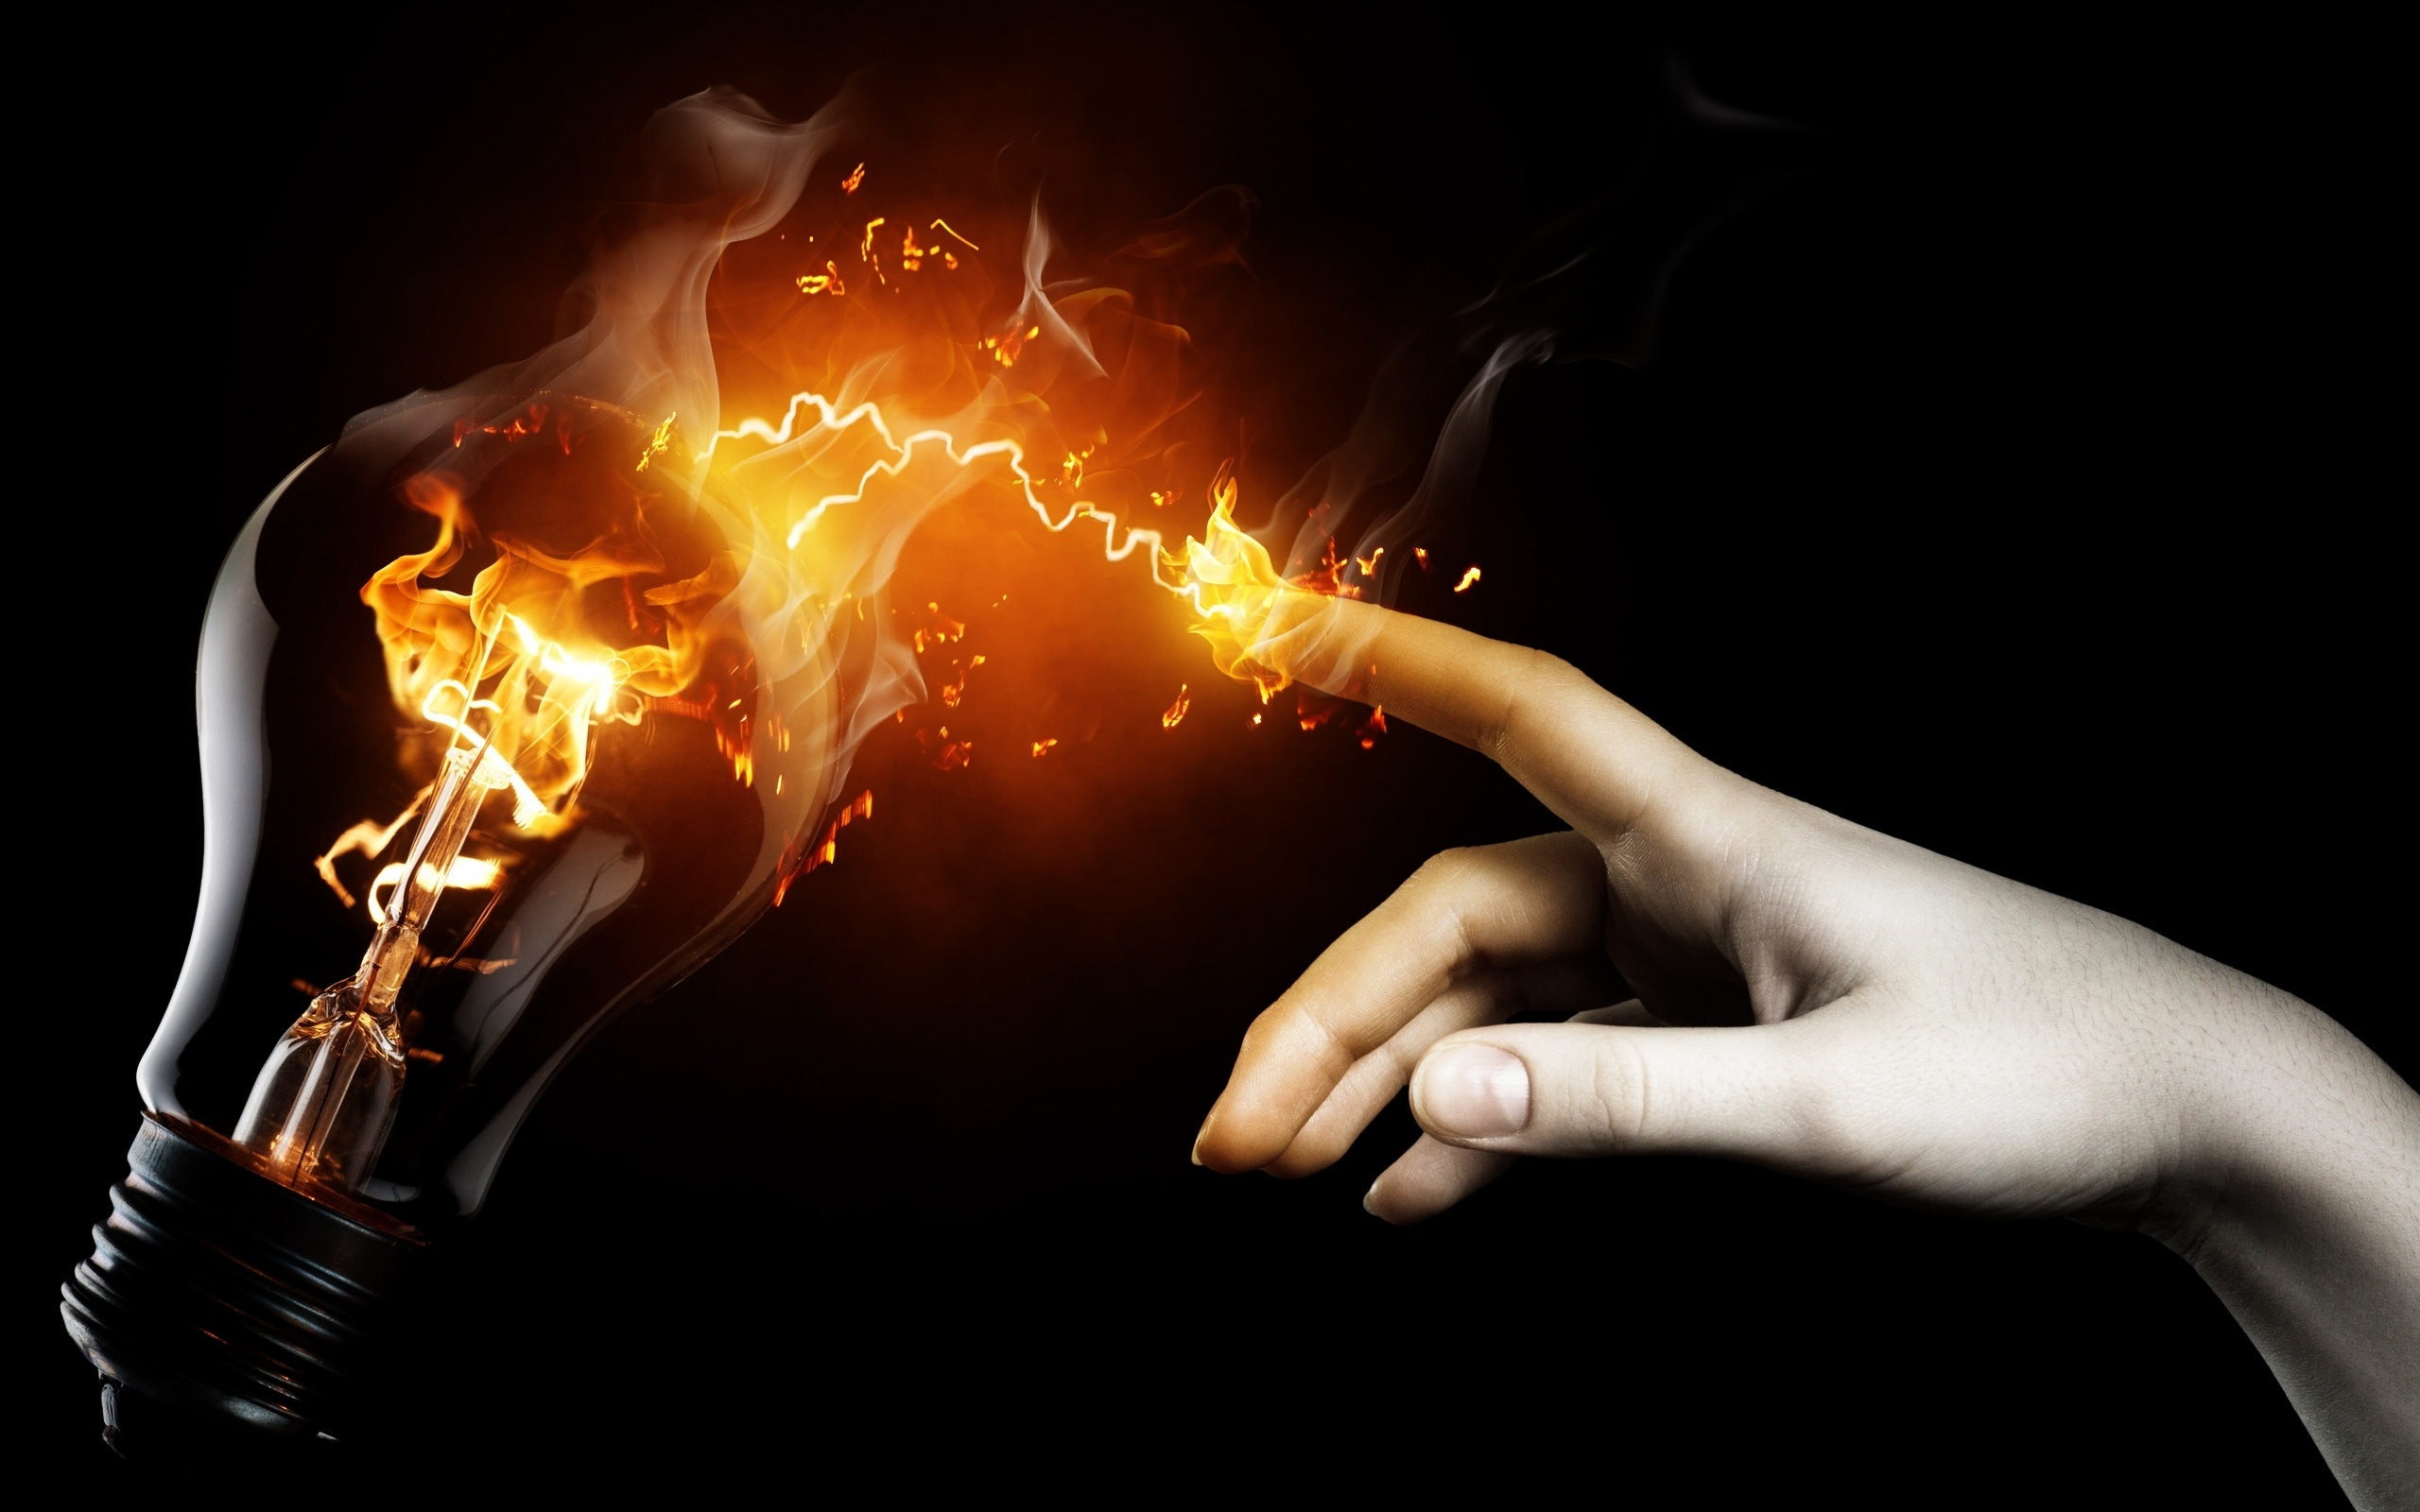 Hand With Fire Spark Touching Lamp Wallpaper And Photo